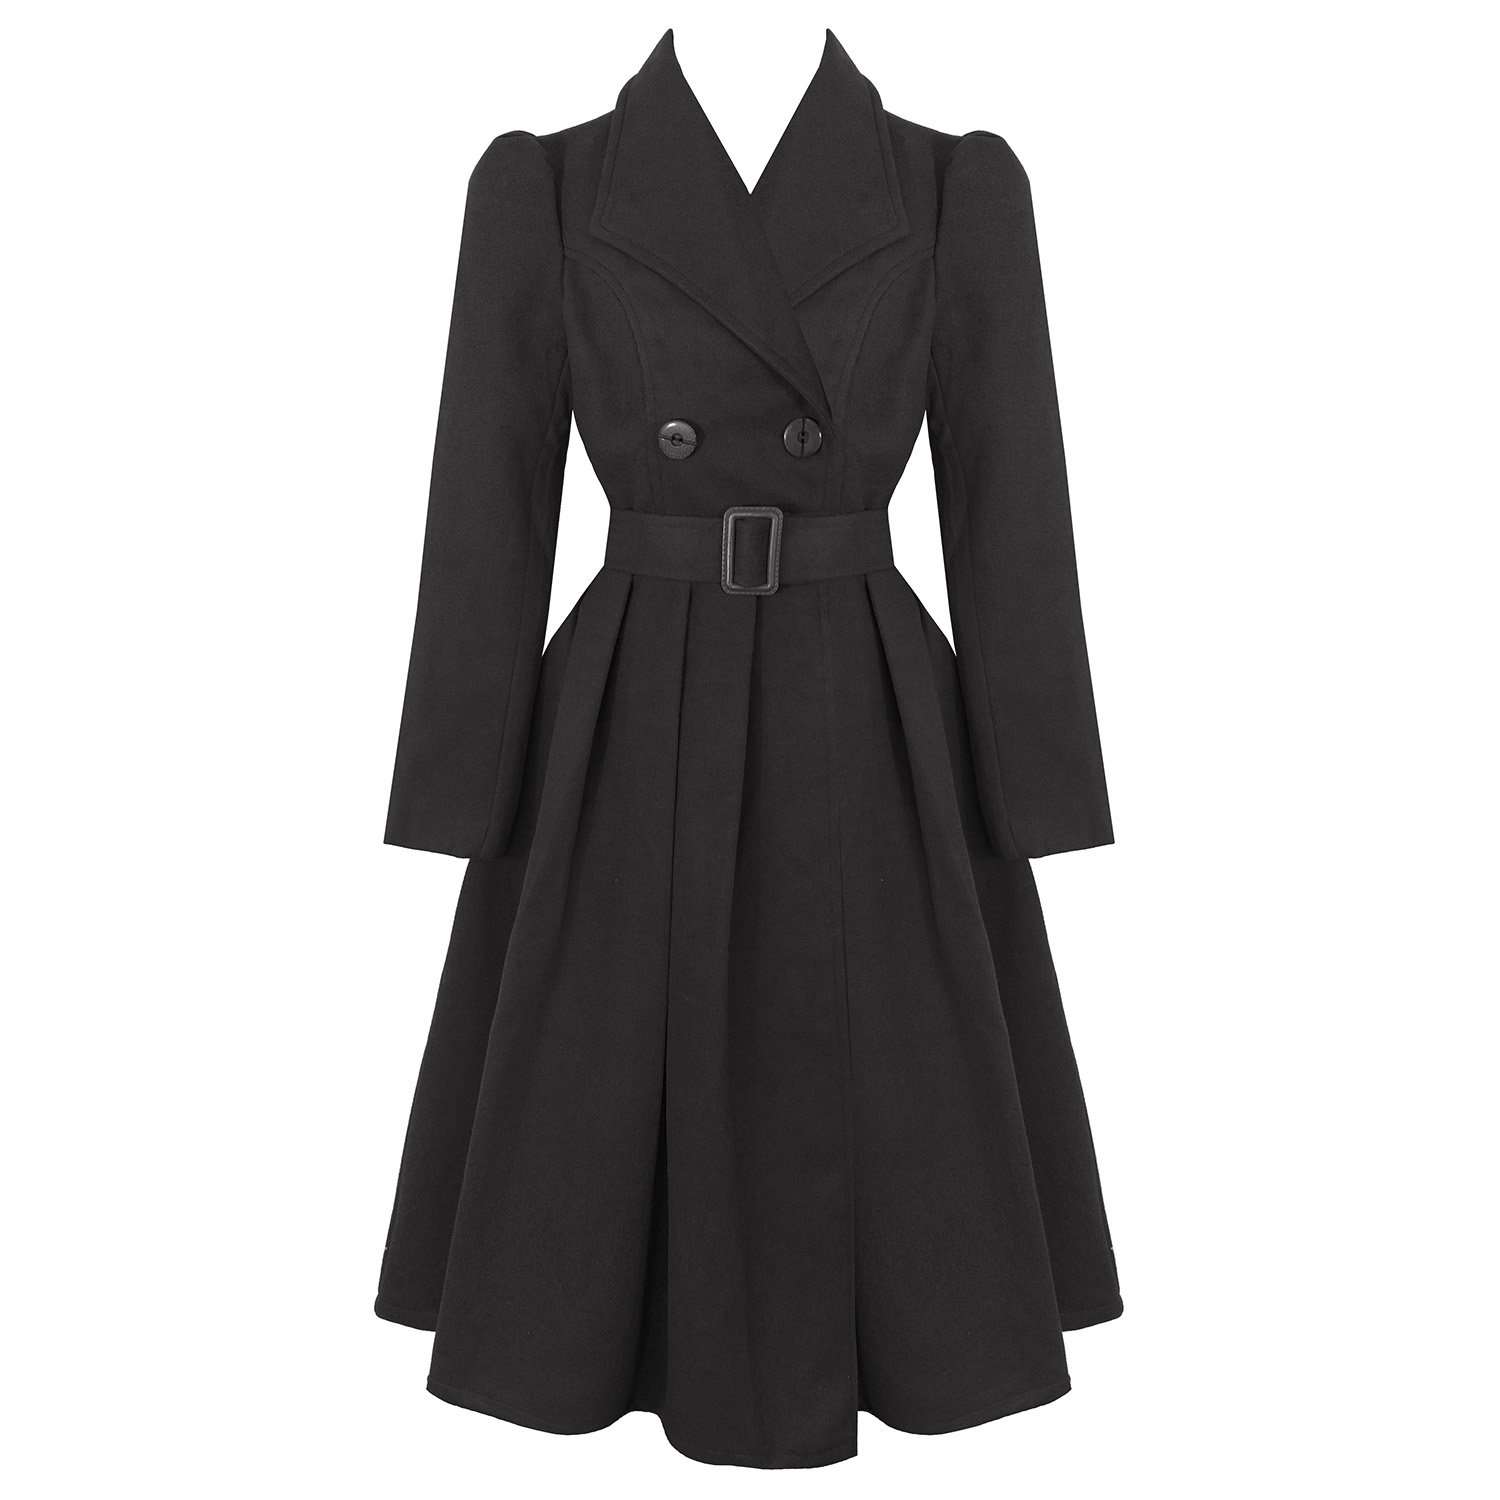 1940s Style Coats and Jackets for Sale hearts and Roses London Vintage 1950s Retro Statement Military Swing Coat £77.99 AT vintagedancer.com